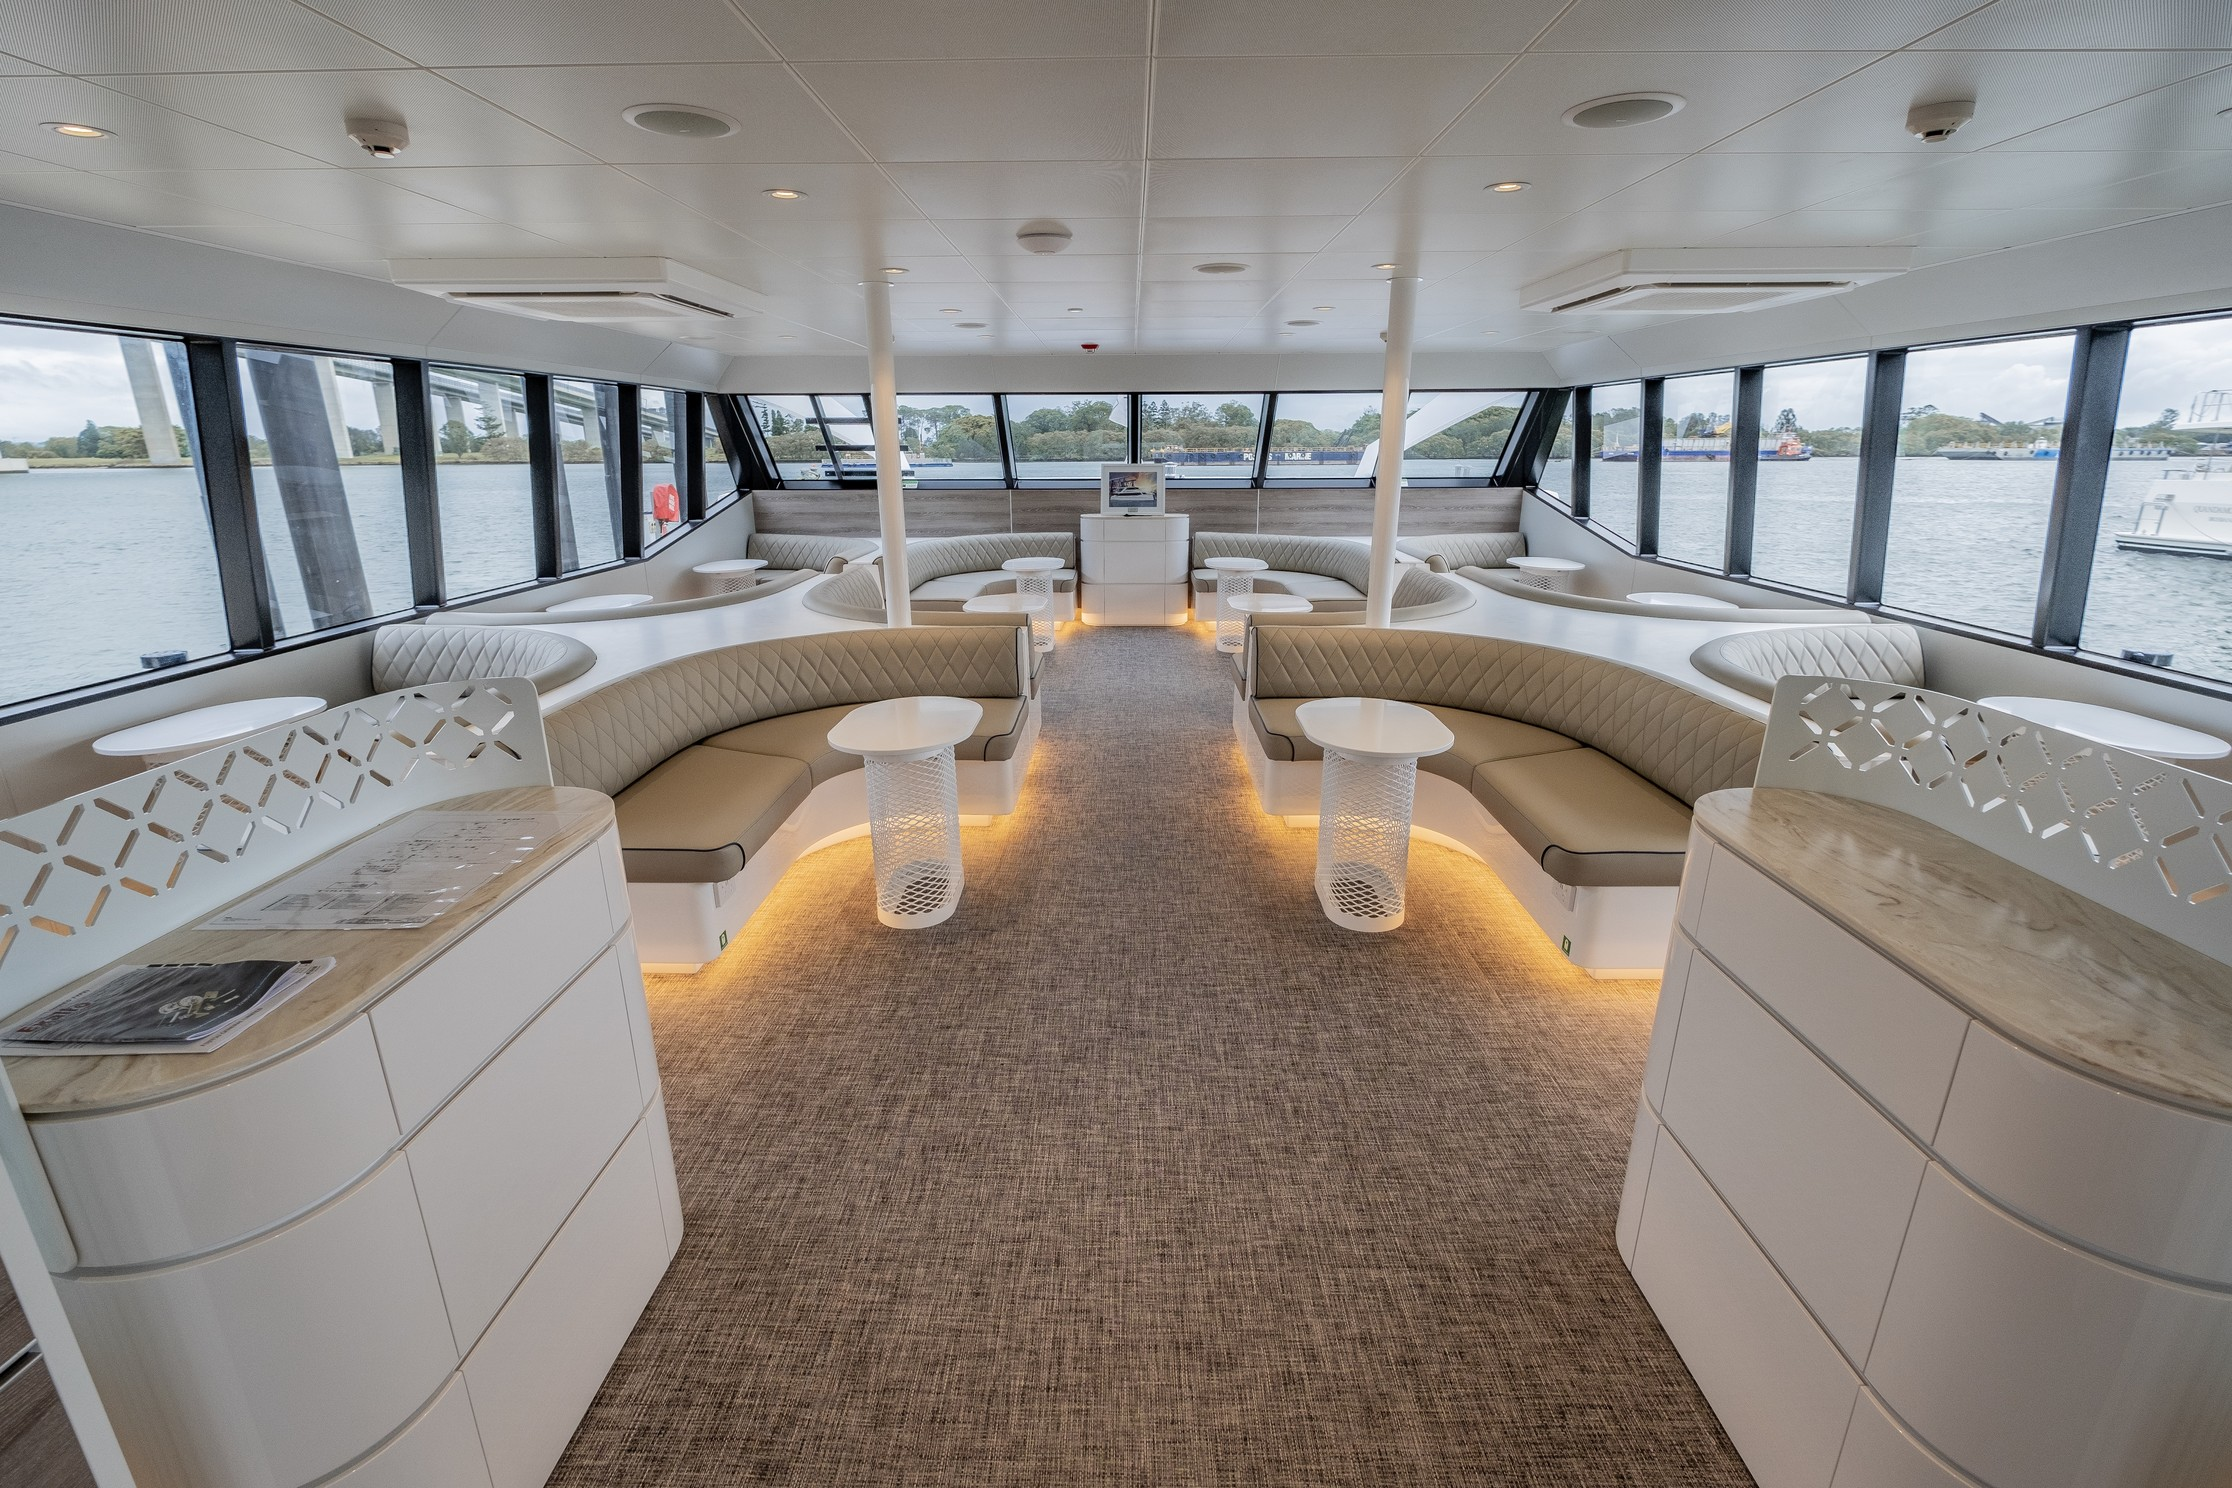 luxury boat interior with lighting under the seats